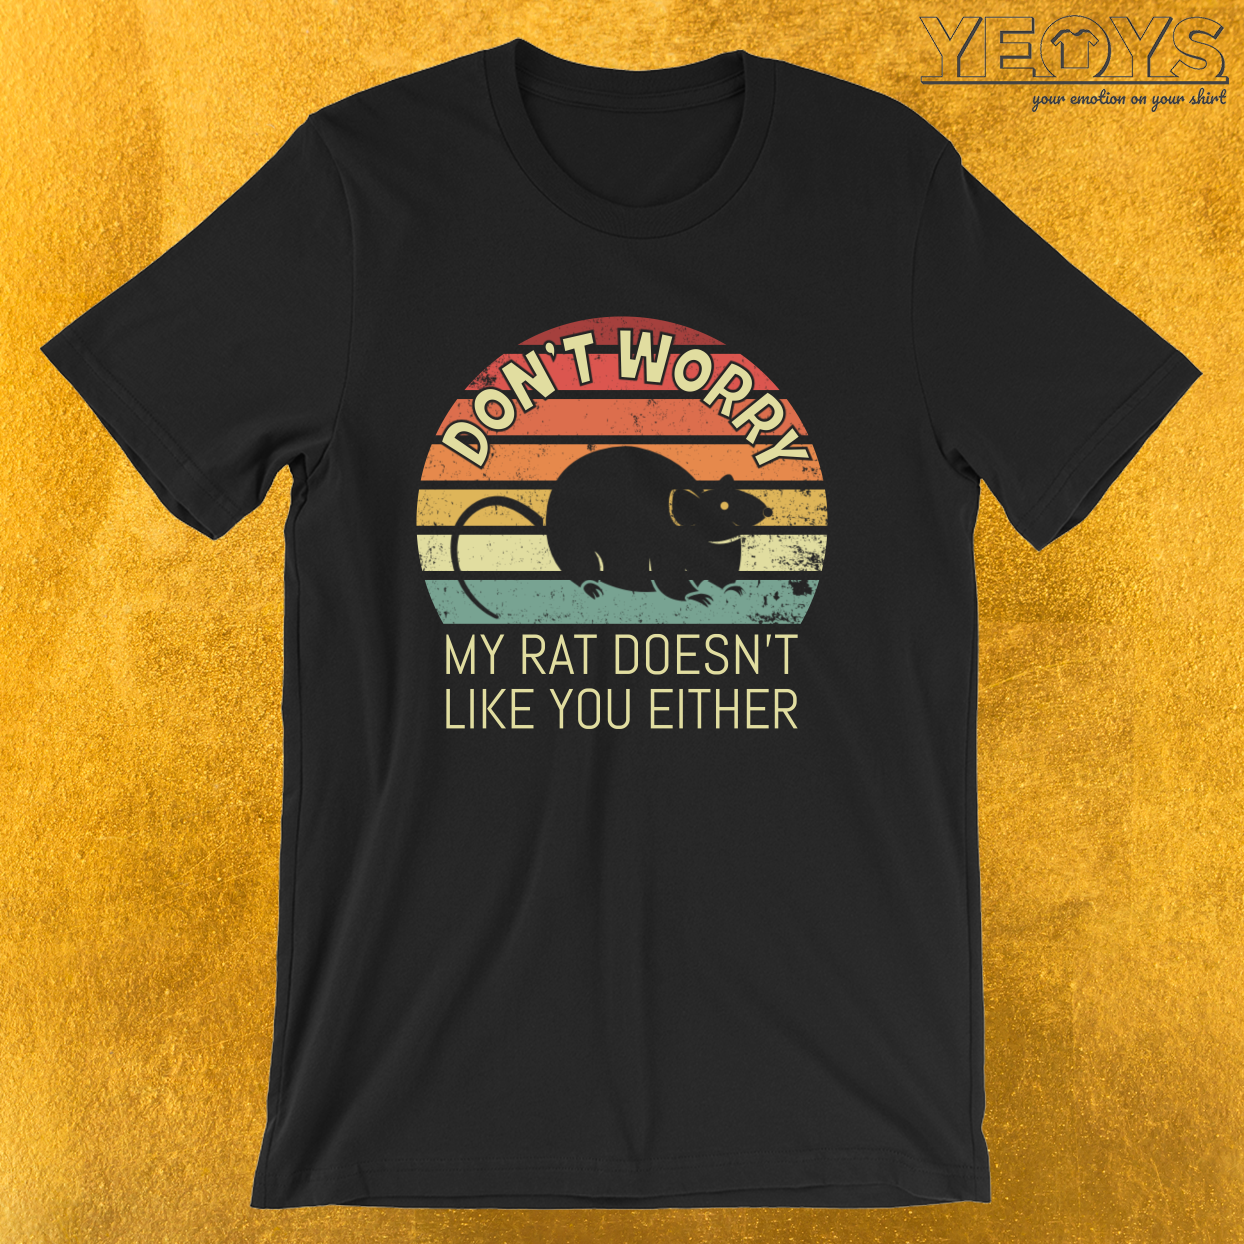 Don't Worry My Rat Doesn't Like You Either – Pet Rat Tee